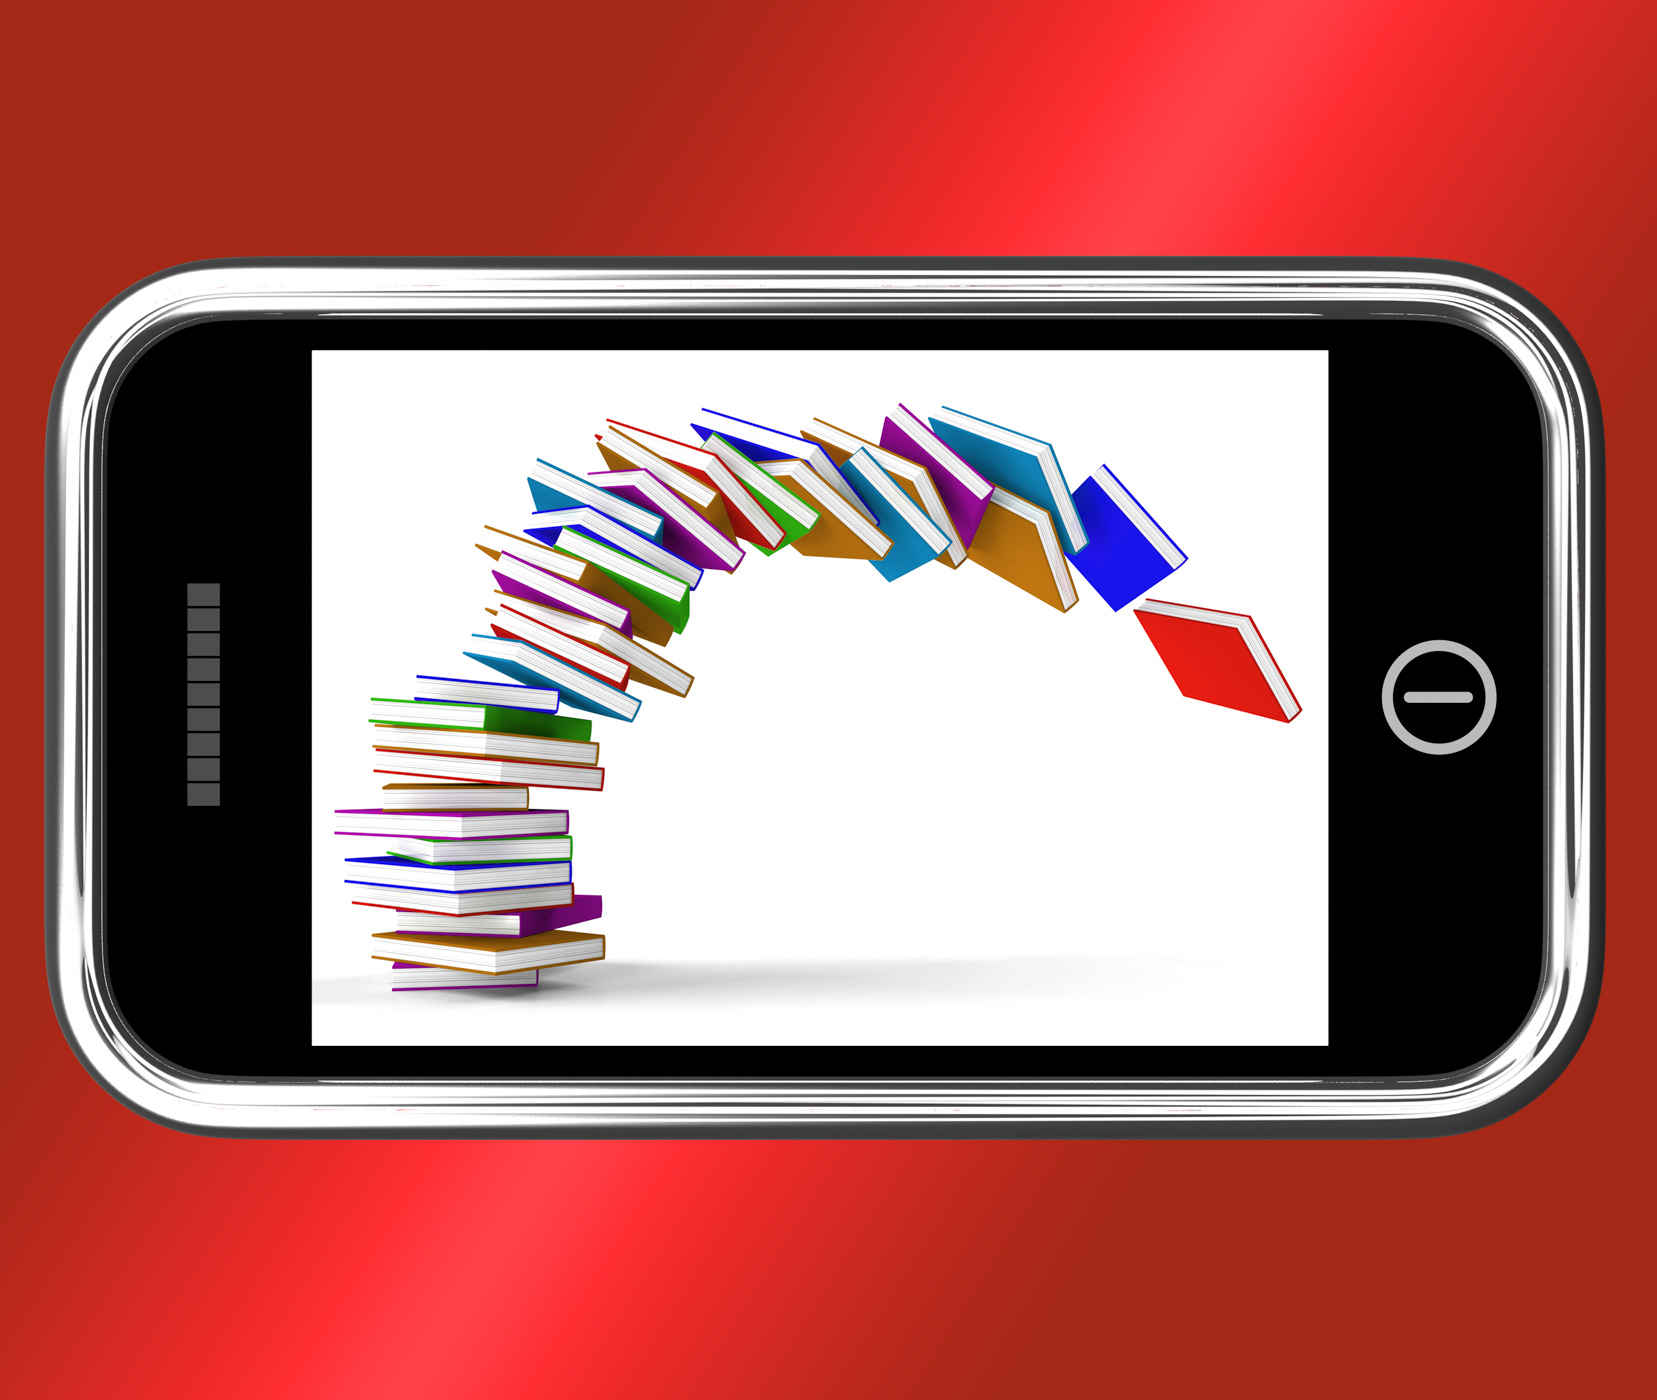 Mobile phone with falling books shows online knowledge photo